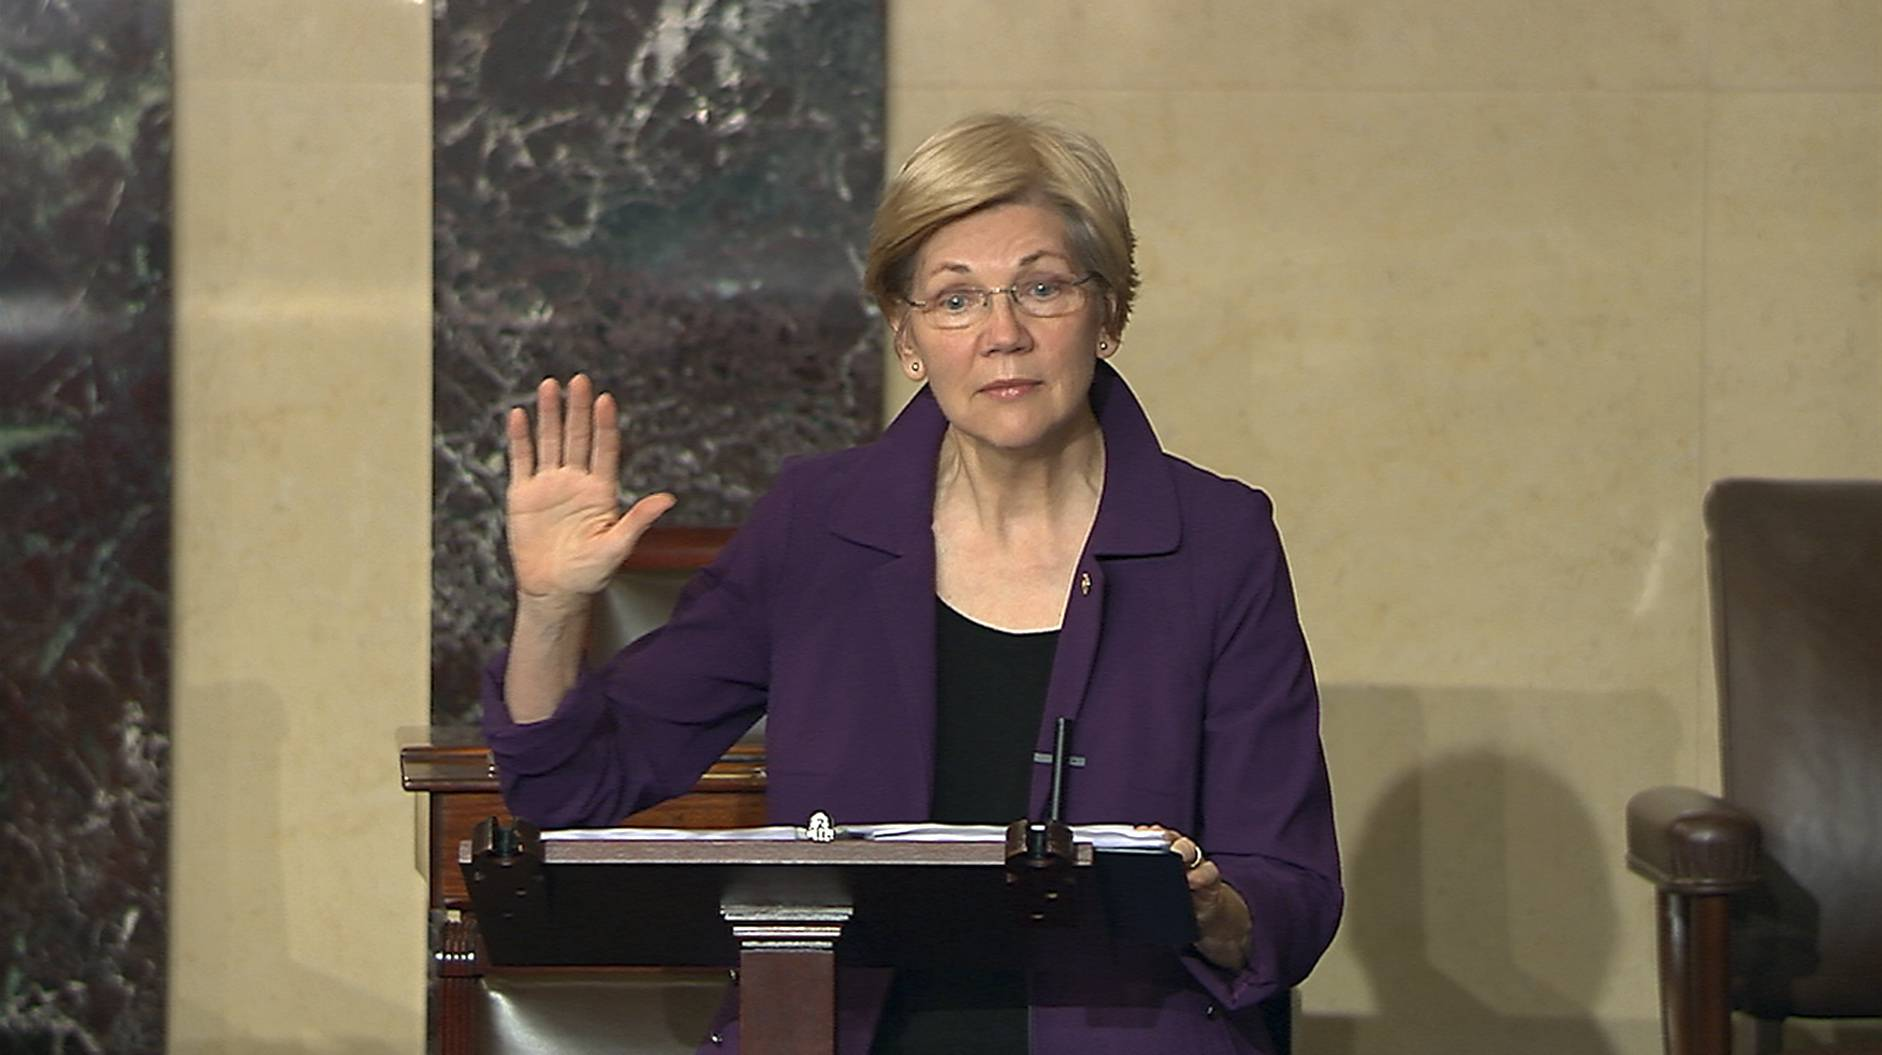 America got a civics lesson Tuesday night when Senate Republicans used an obscure rule to shut down a speech by Sen. Elizabeth Warren, D-Mass., that criticized Sen. Jeff Sessions, R-Ala., the nominee for attorney general.